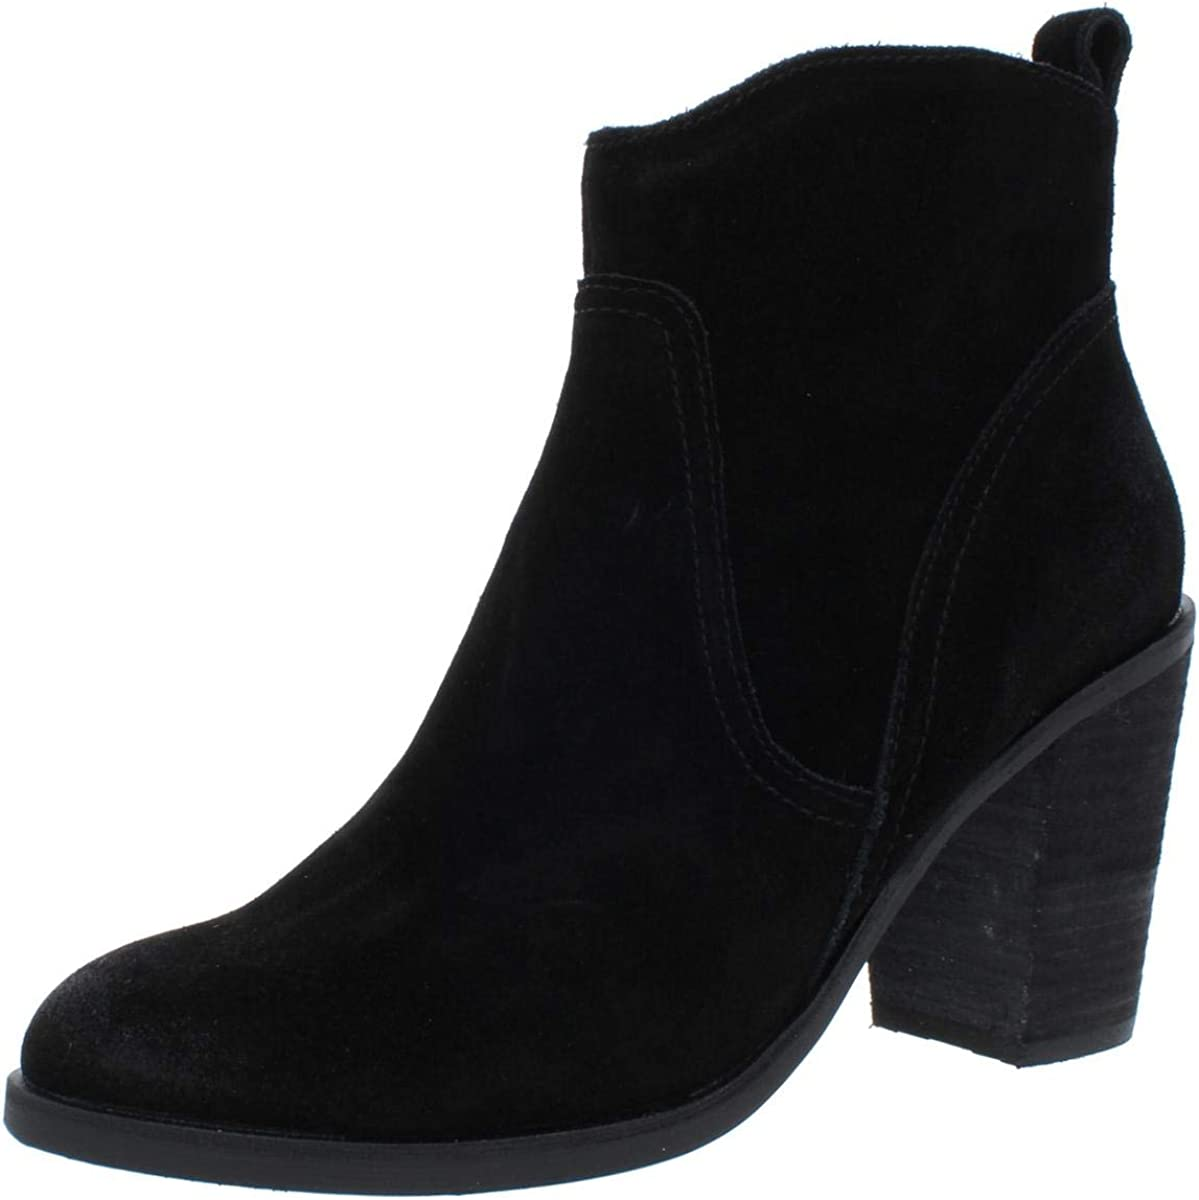 Dolce Vita Womens Saint Ankle Outlet SALE Suede Ranking TOP12 Booties